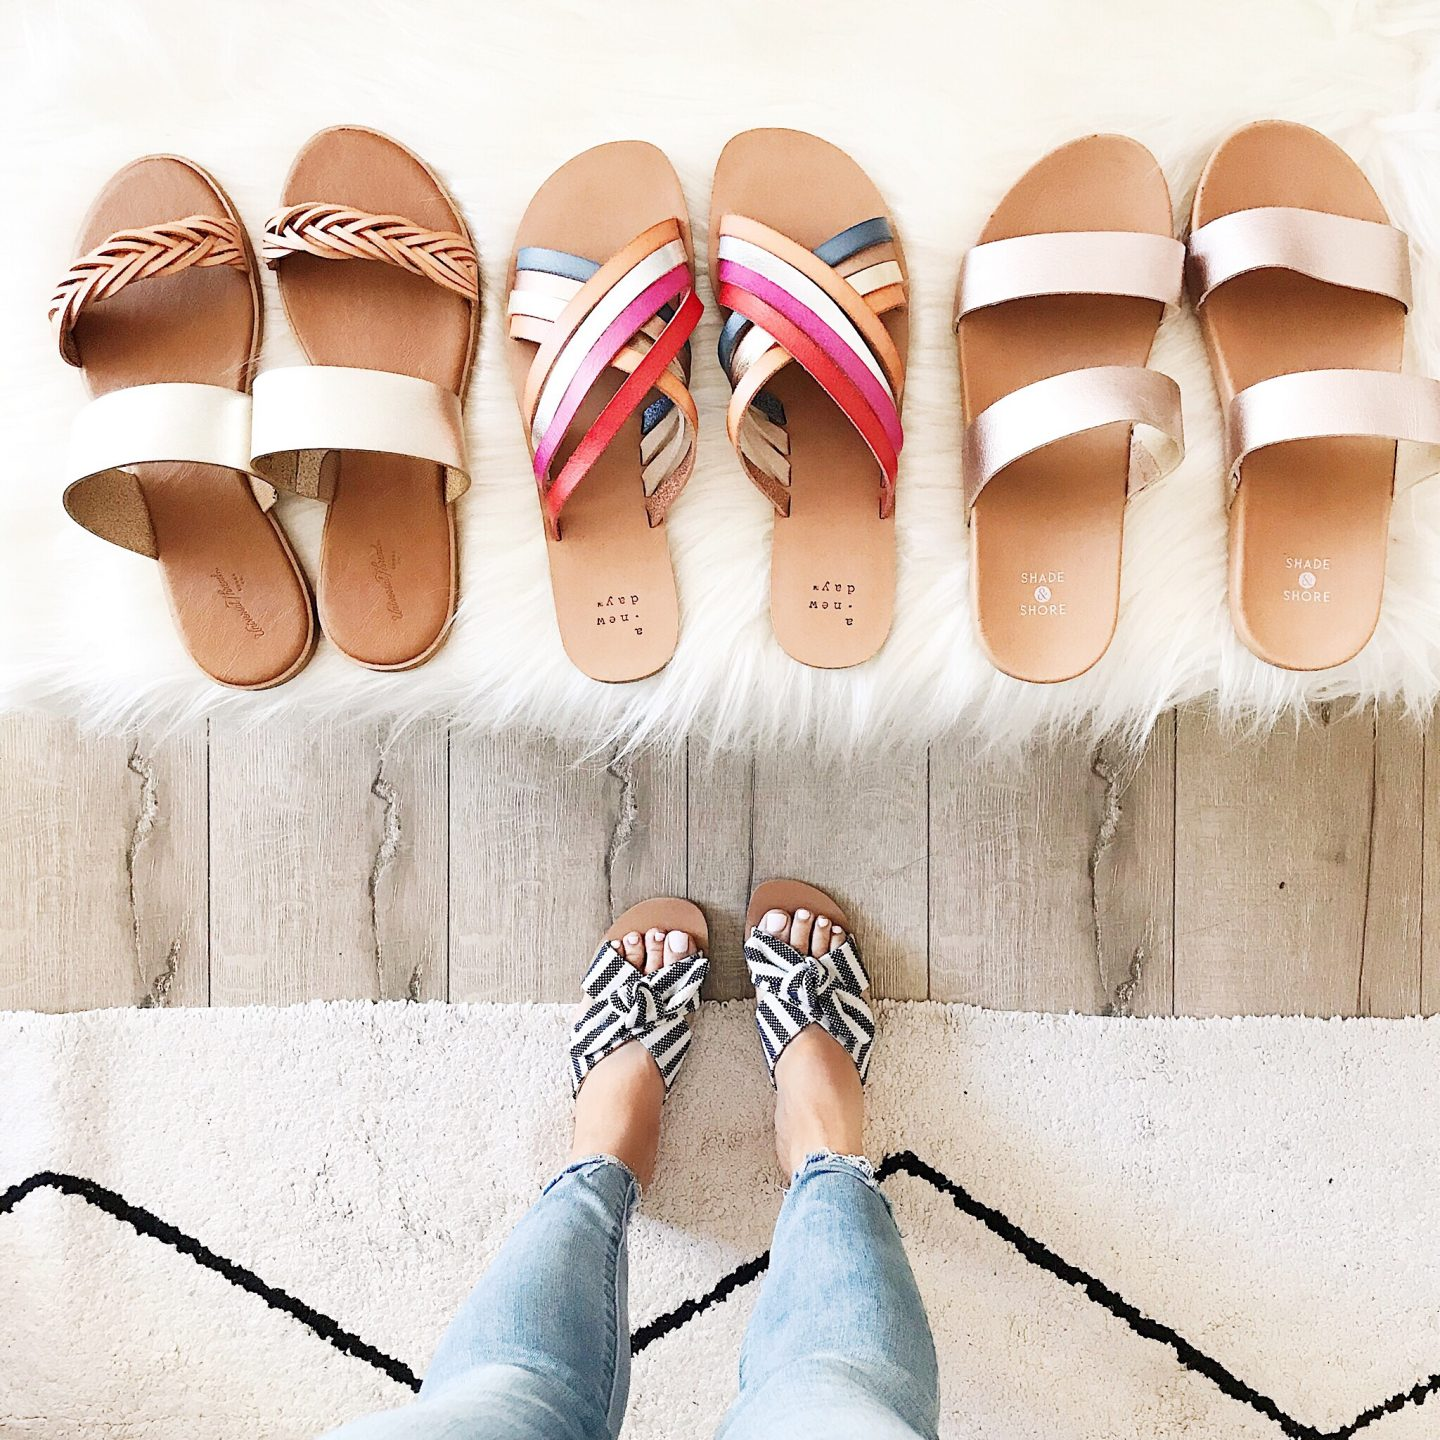 0de0a78a1765 There are so many amazing sandals at Target right now AND they are  currently all on sale for BOGO 50% off! With that being said